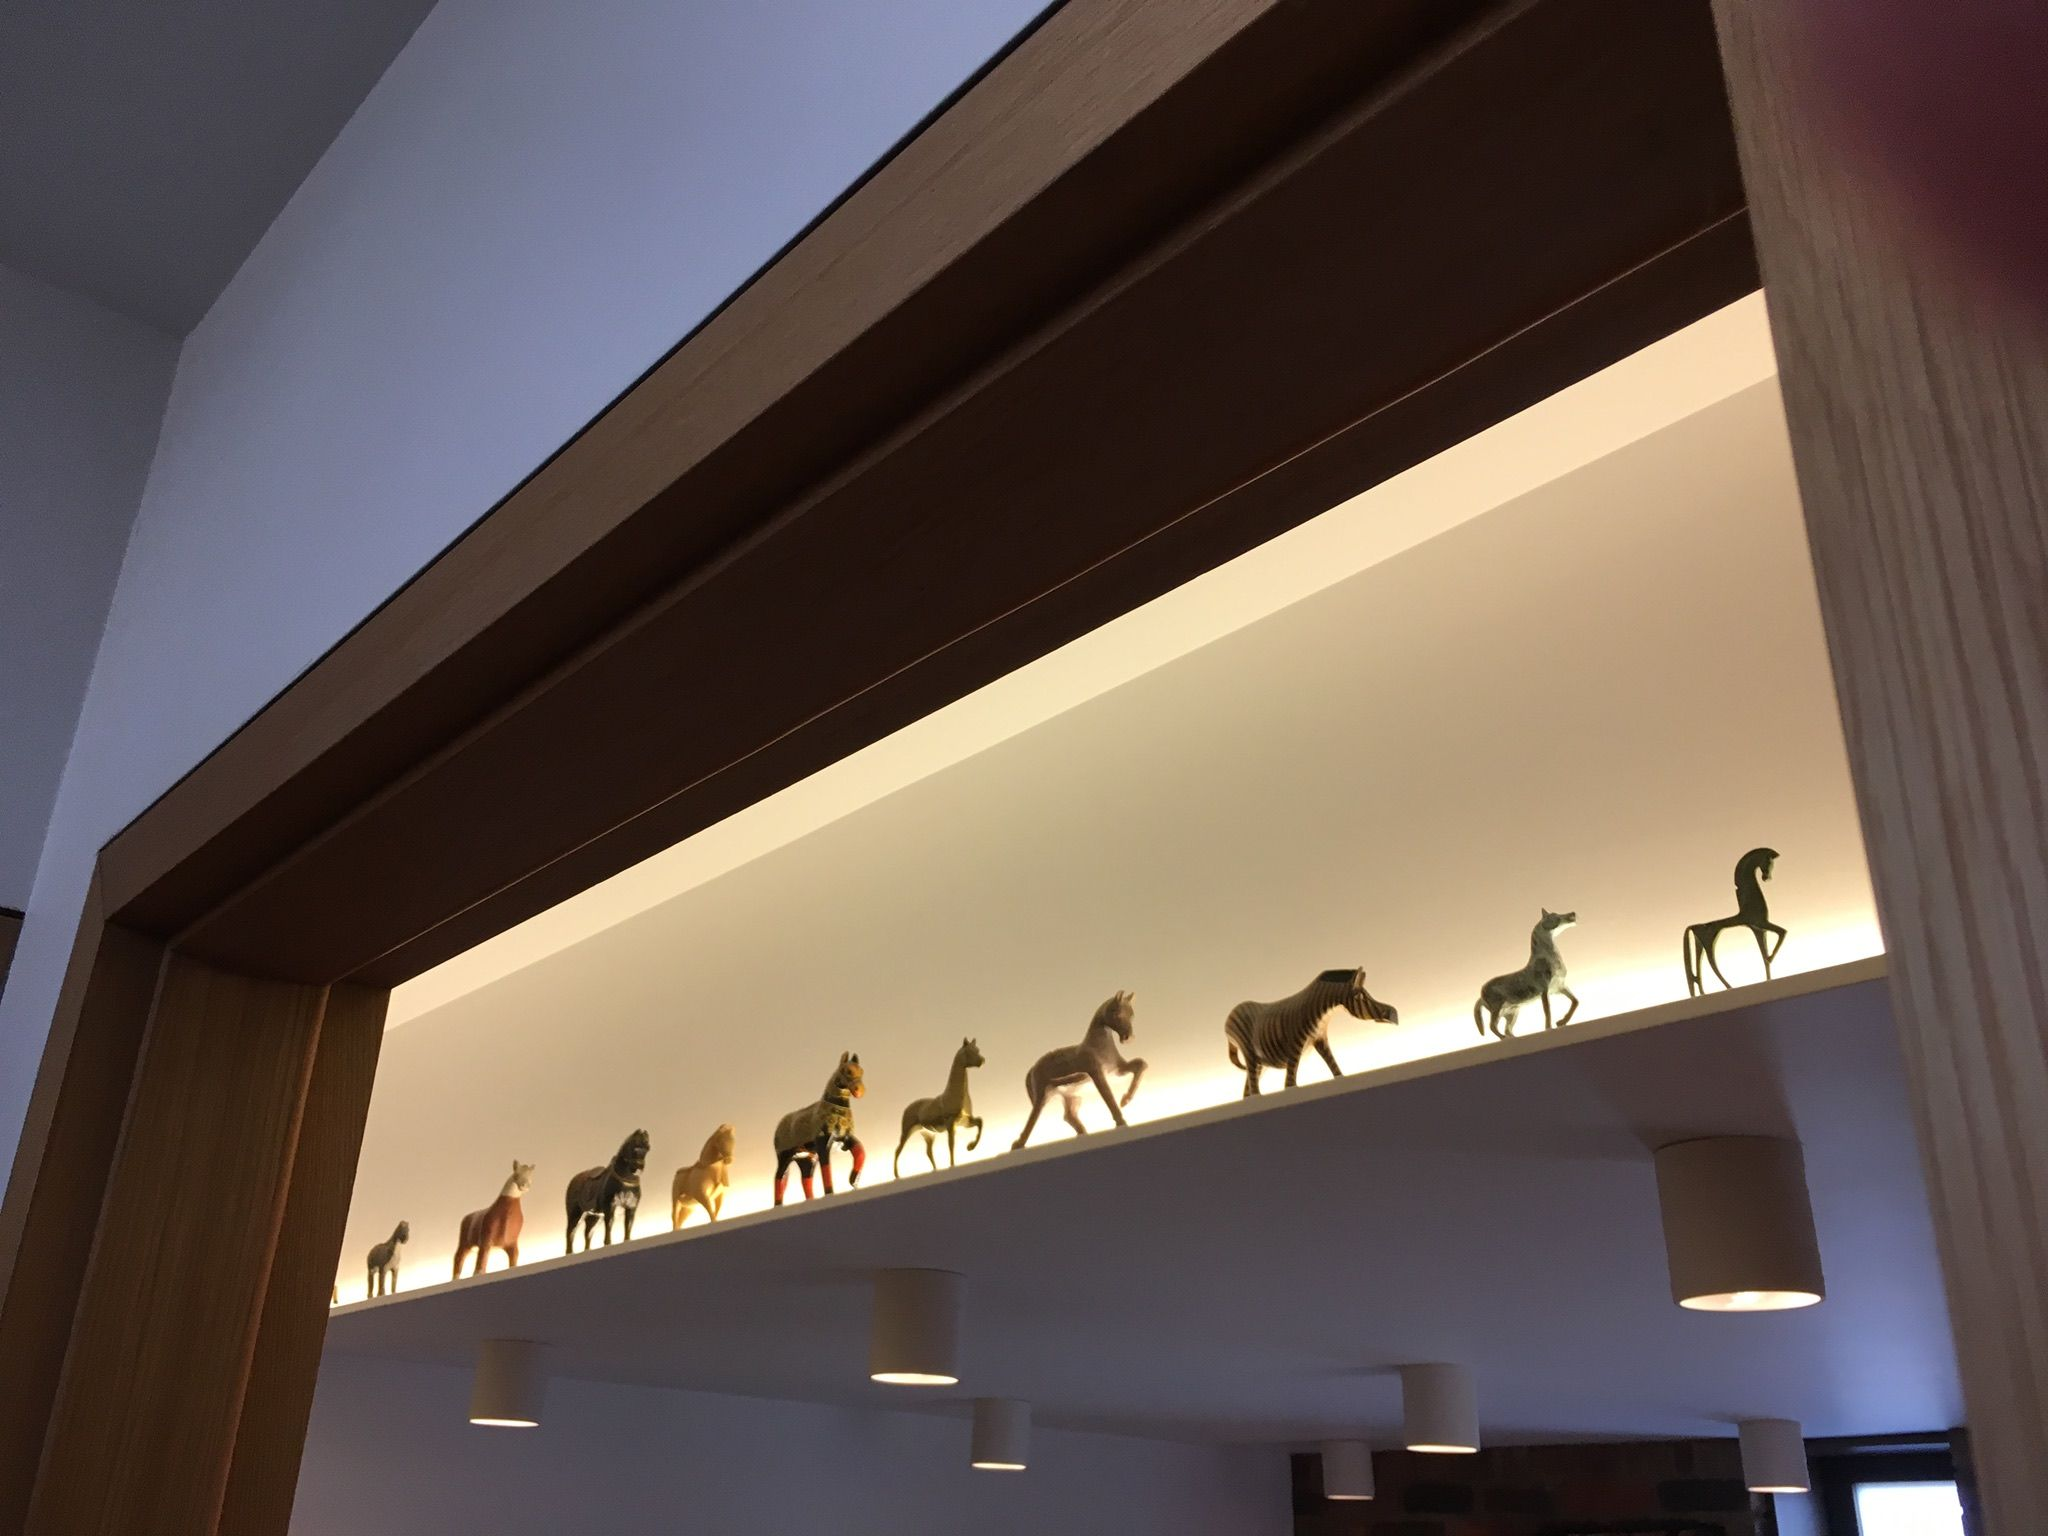 Uplight Suspended Ceiling With Leds Provides Display Space